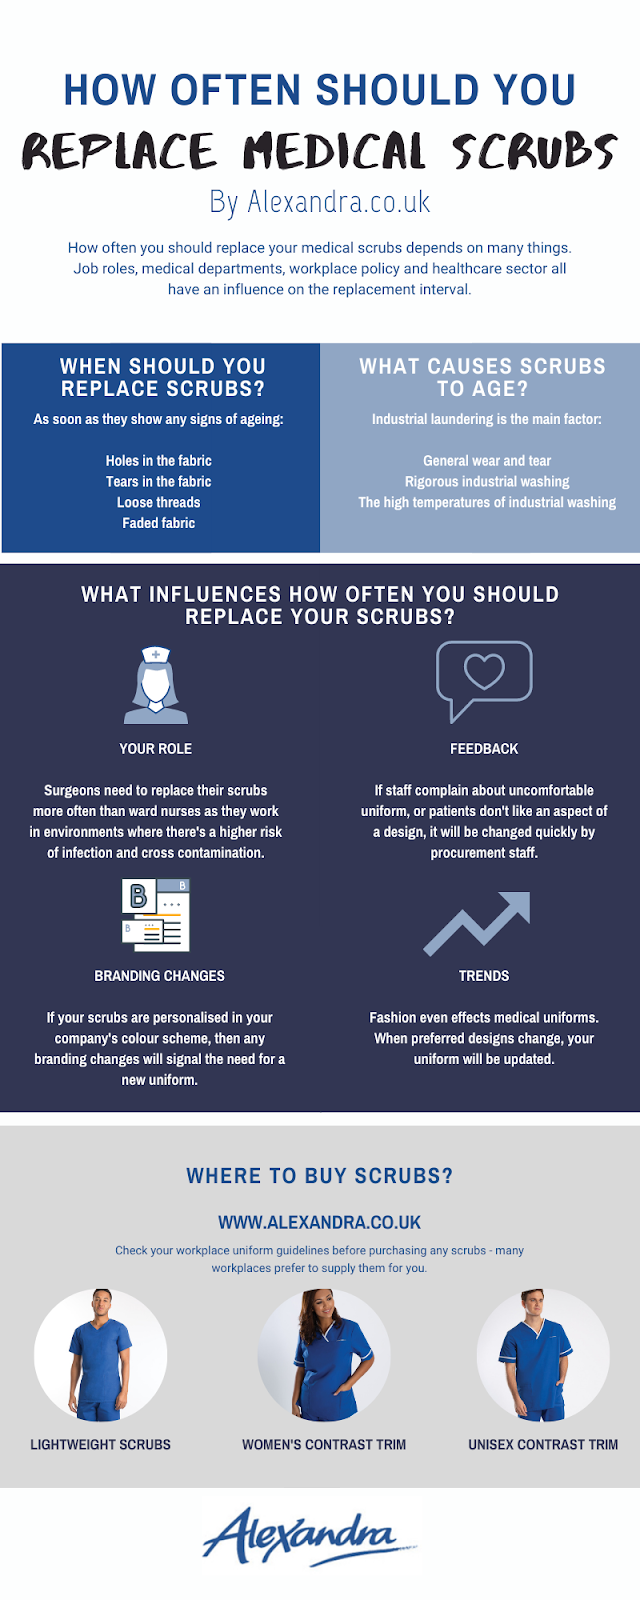 How often should you replace your scrubs? An infographic by Alexandra